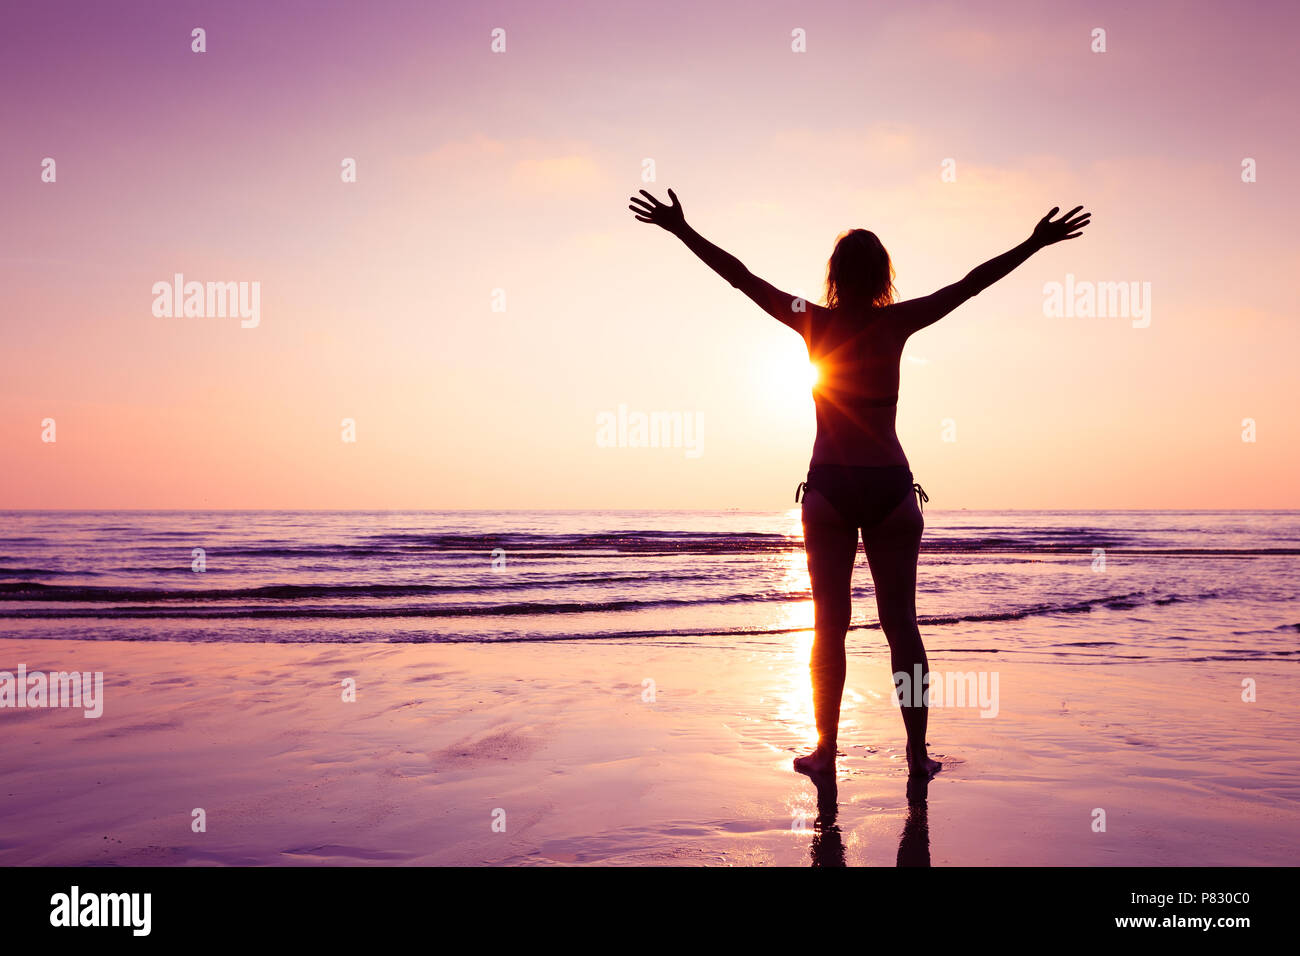 Happy joyful woman spreading hands on the beach at sunset, cheerful emotion and mindfulness, balance, mindful thinking - Stock Image